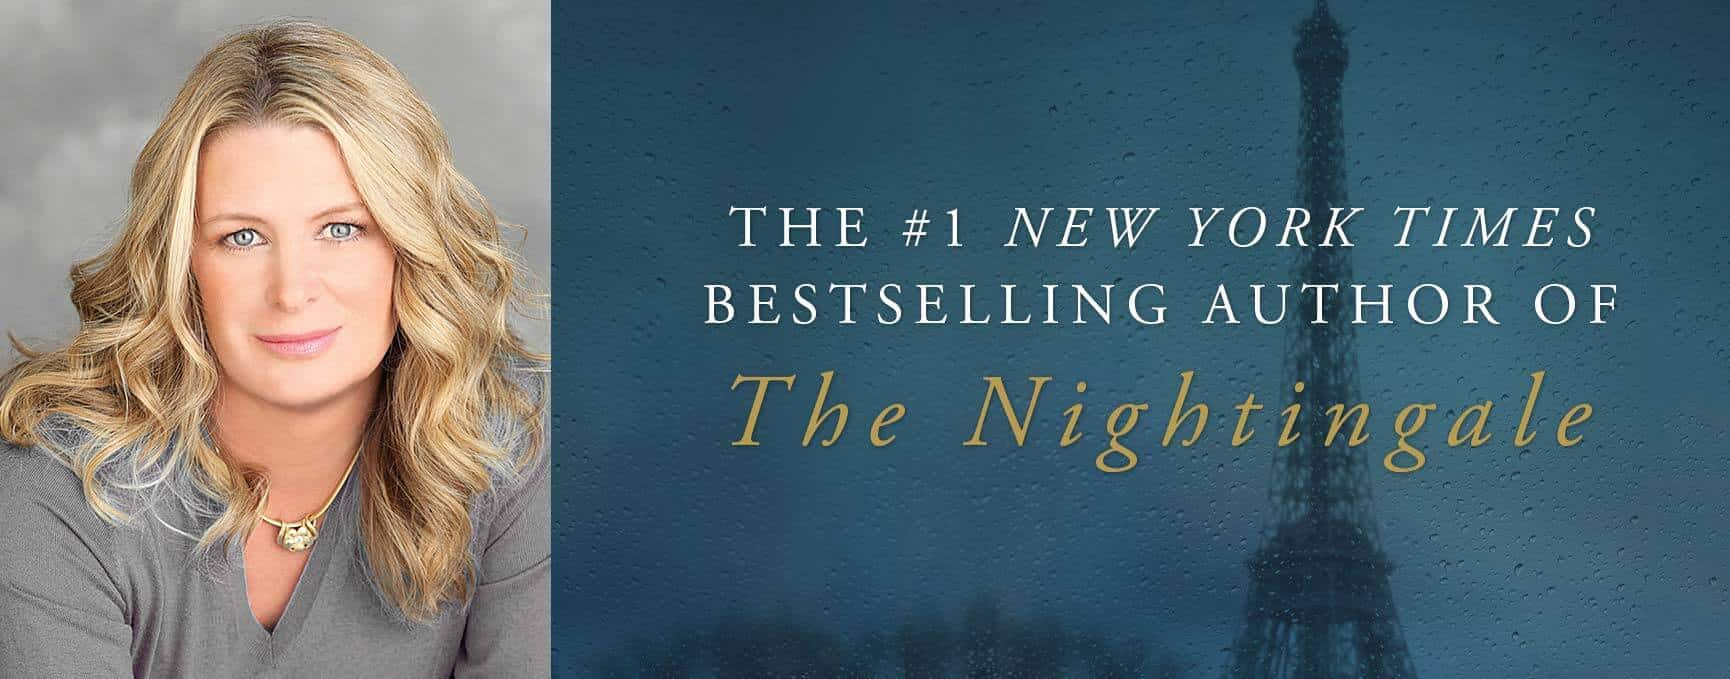 Kristin Hannah, #1 New York Times Bestselling Author of 'The Nightingale'